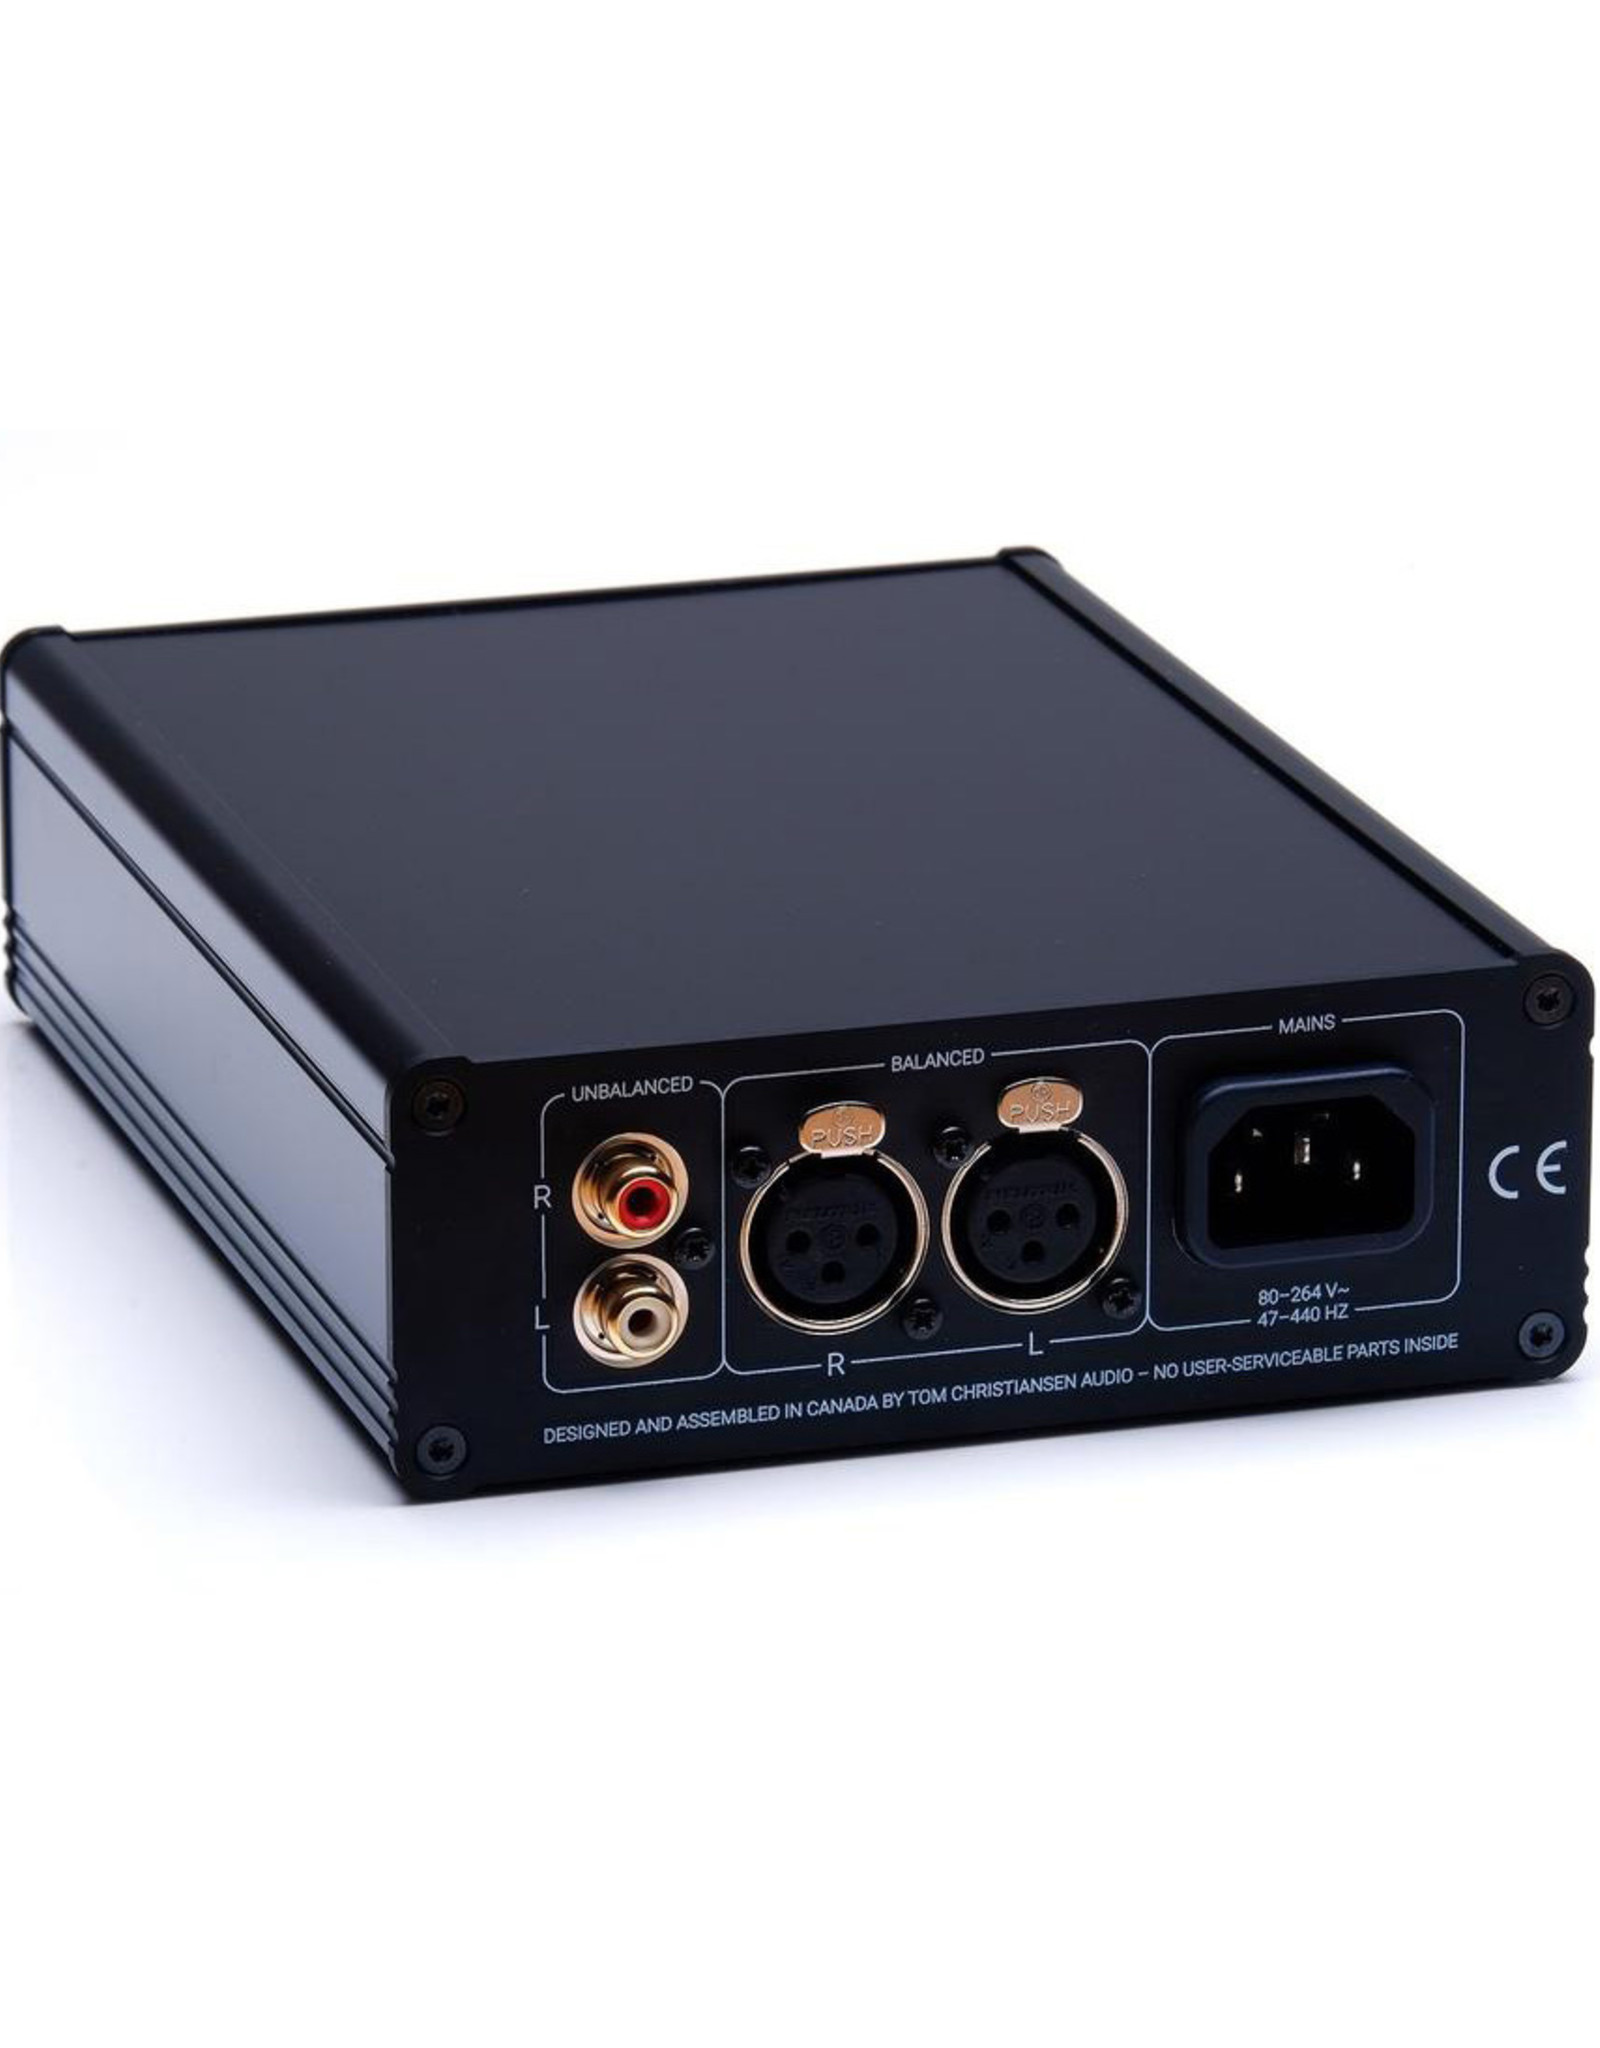 Tom Christiansen Audio HPA-1 Audiophile Headphone Amplifier